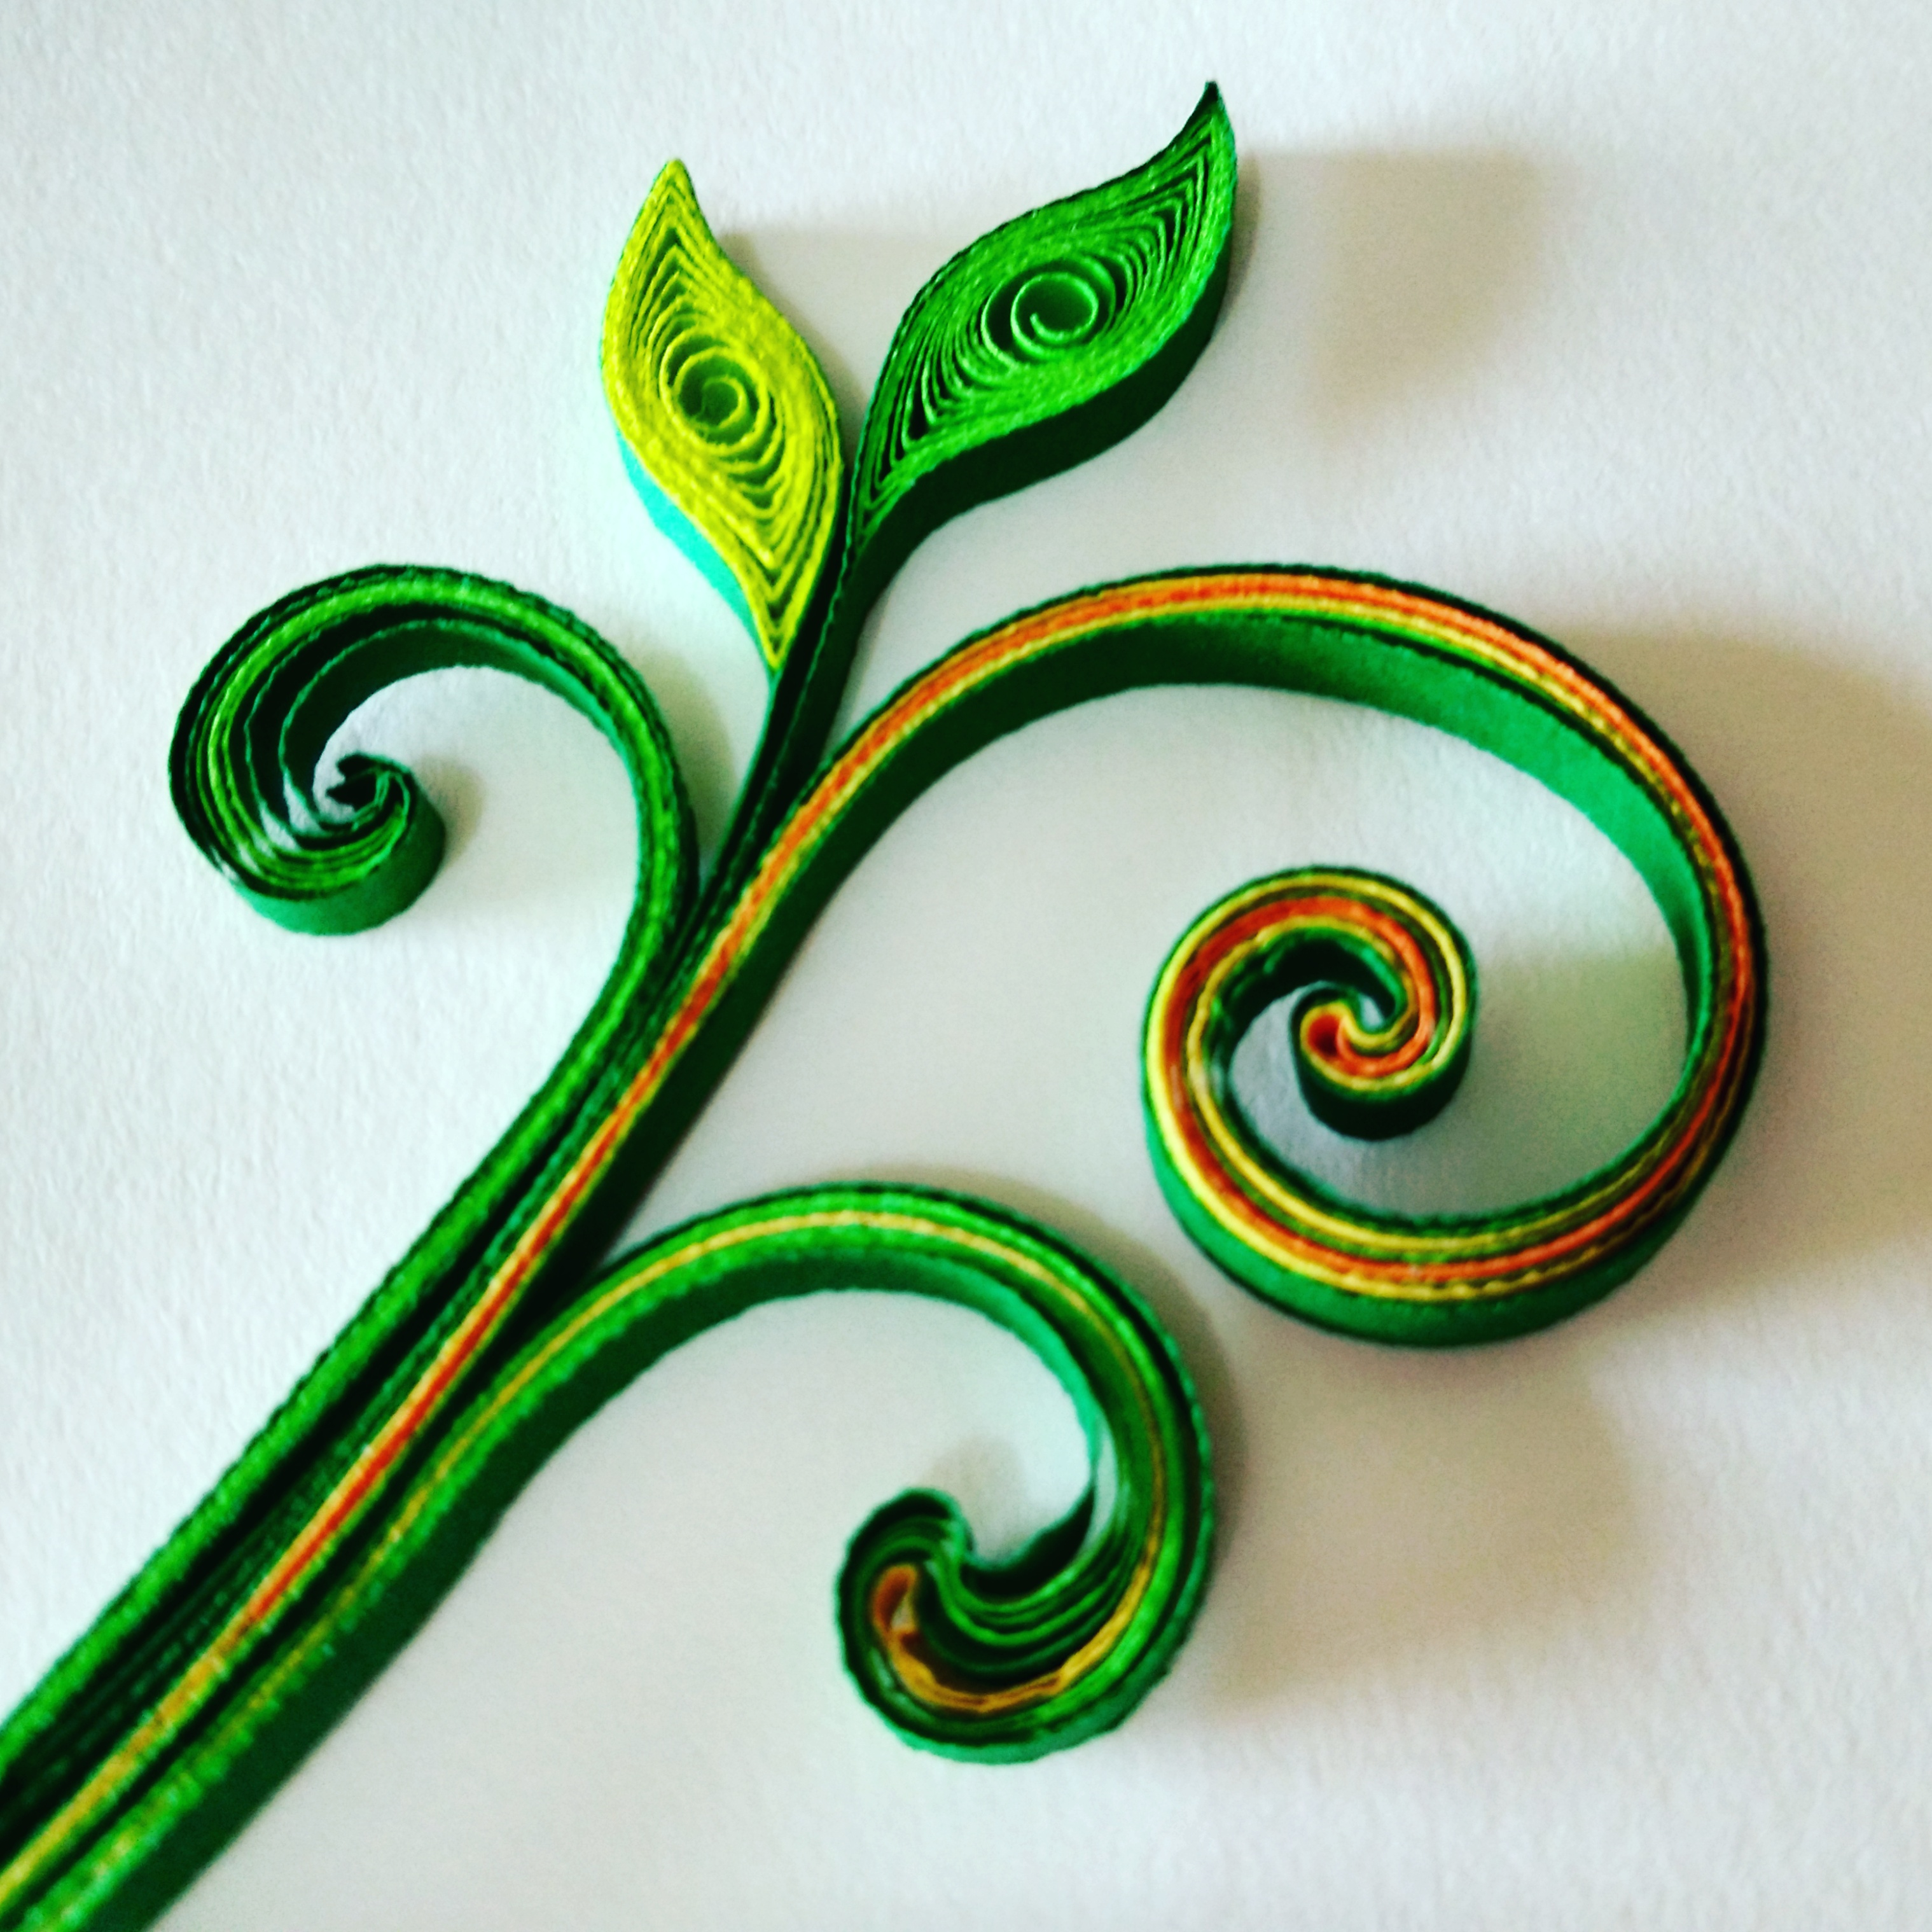 Picture of Leaves - Quilled Leaves and Tendrils